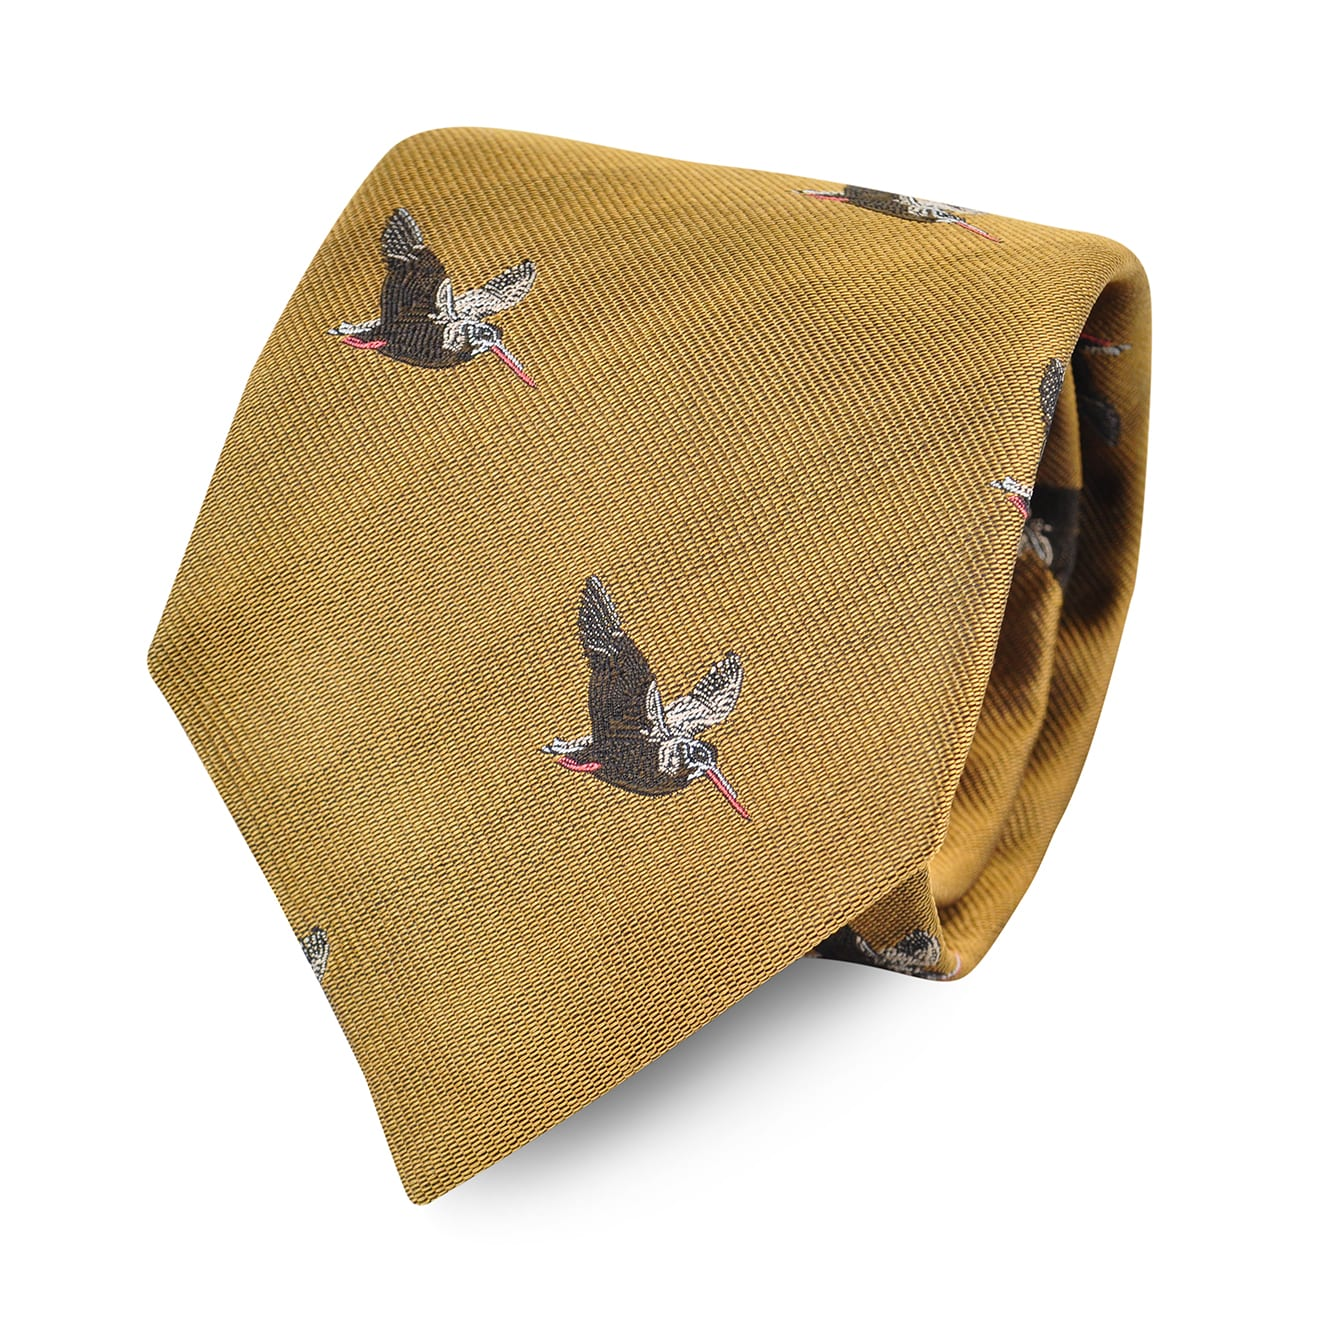 James Purdey Flying Woodcock Woven Silk Tie Gold